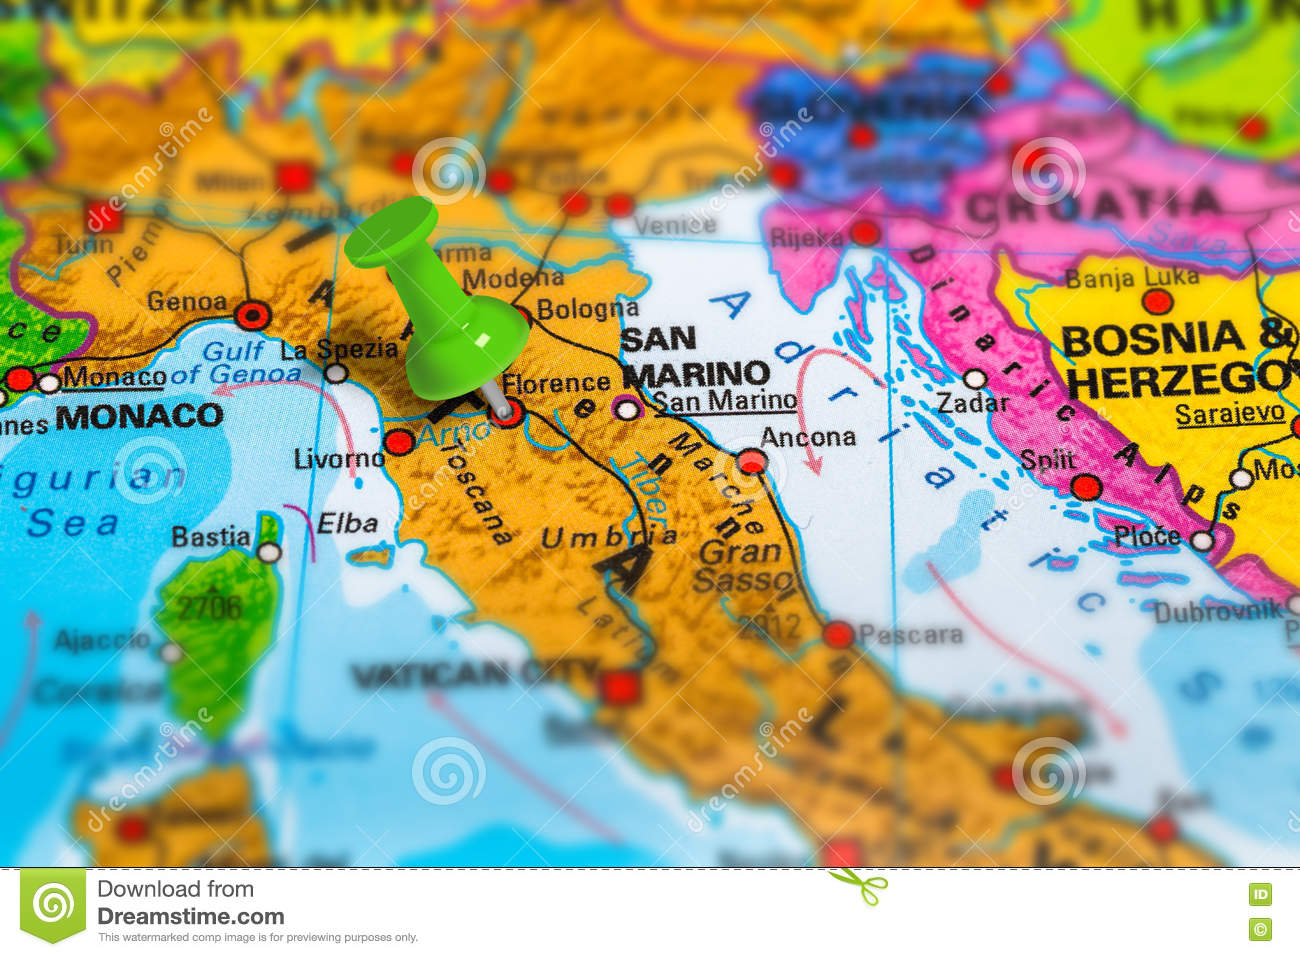 Map Of Italy Showing Florence.Florence Italy Map Stock Image Image Of Landmark Closeup 80955903